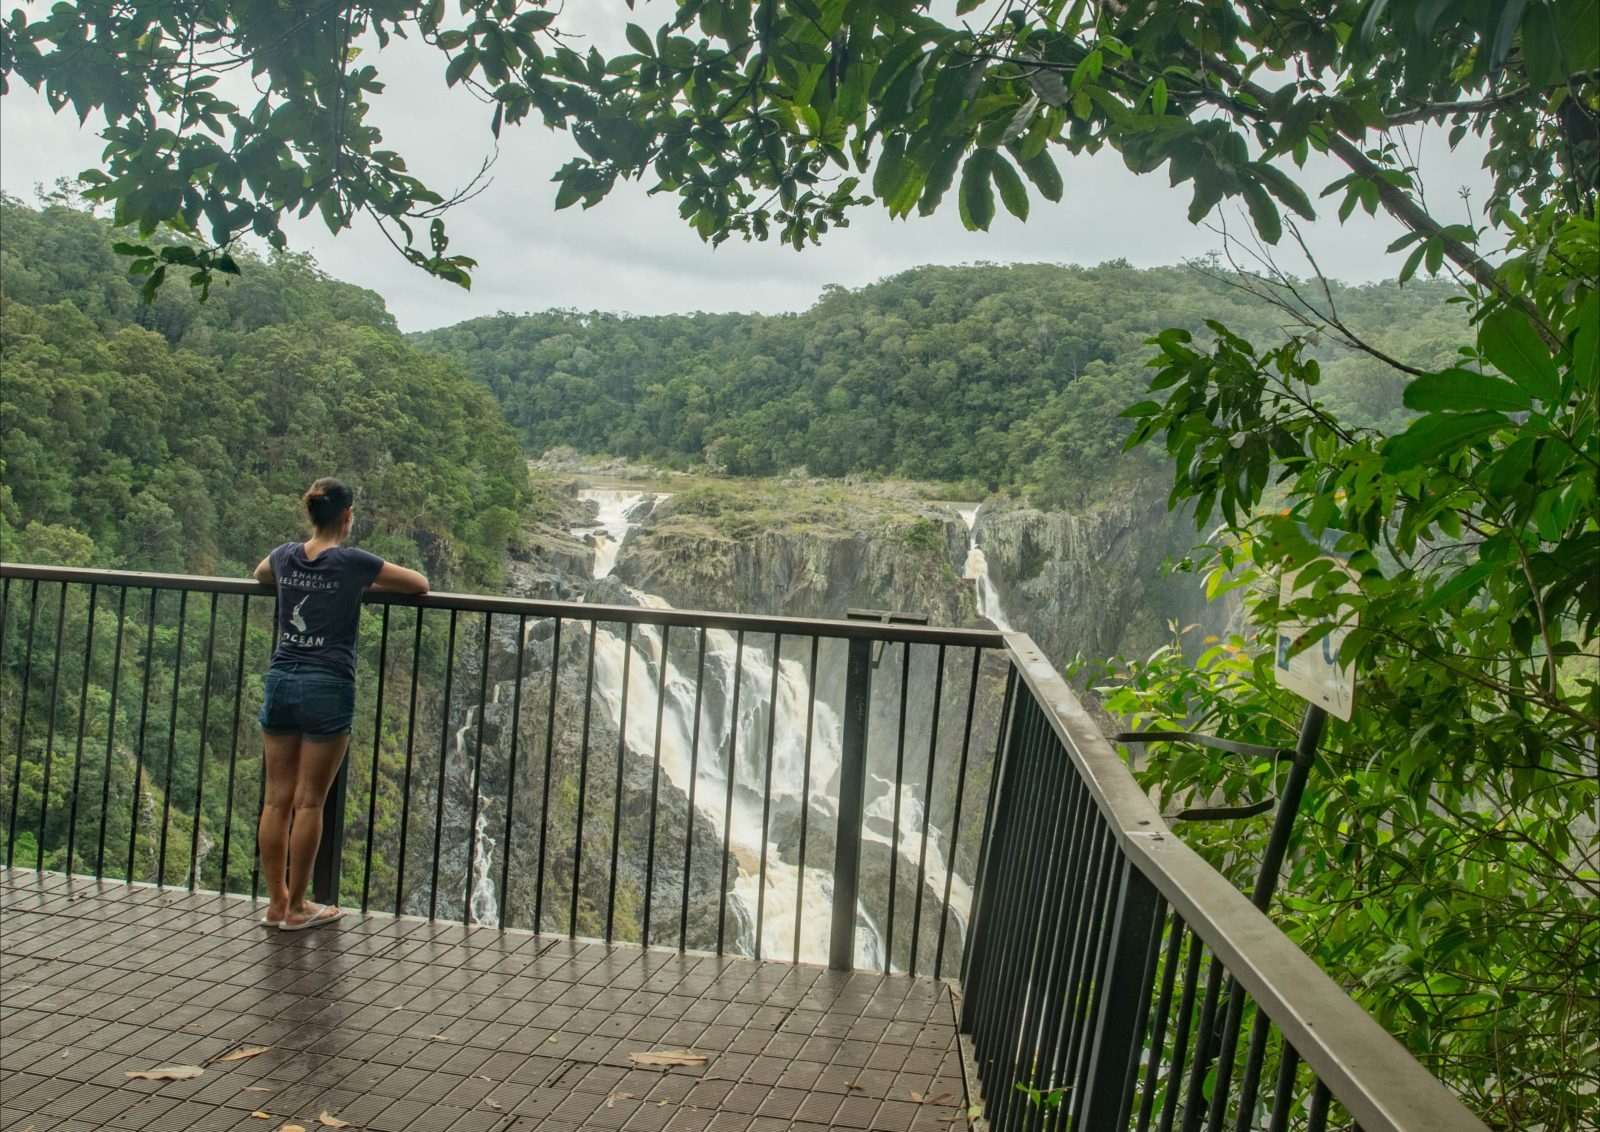 View of barron Falls from Din Din Barron Falls lookout, Barron Gorge National Park